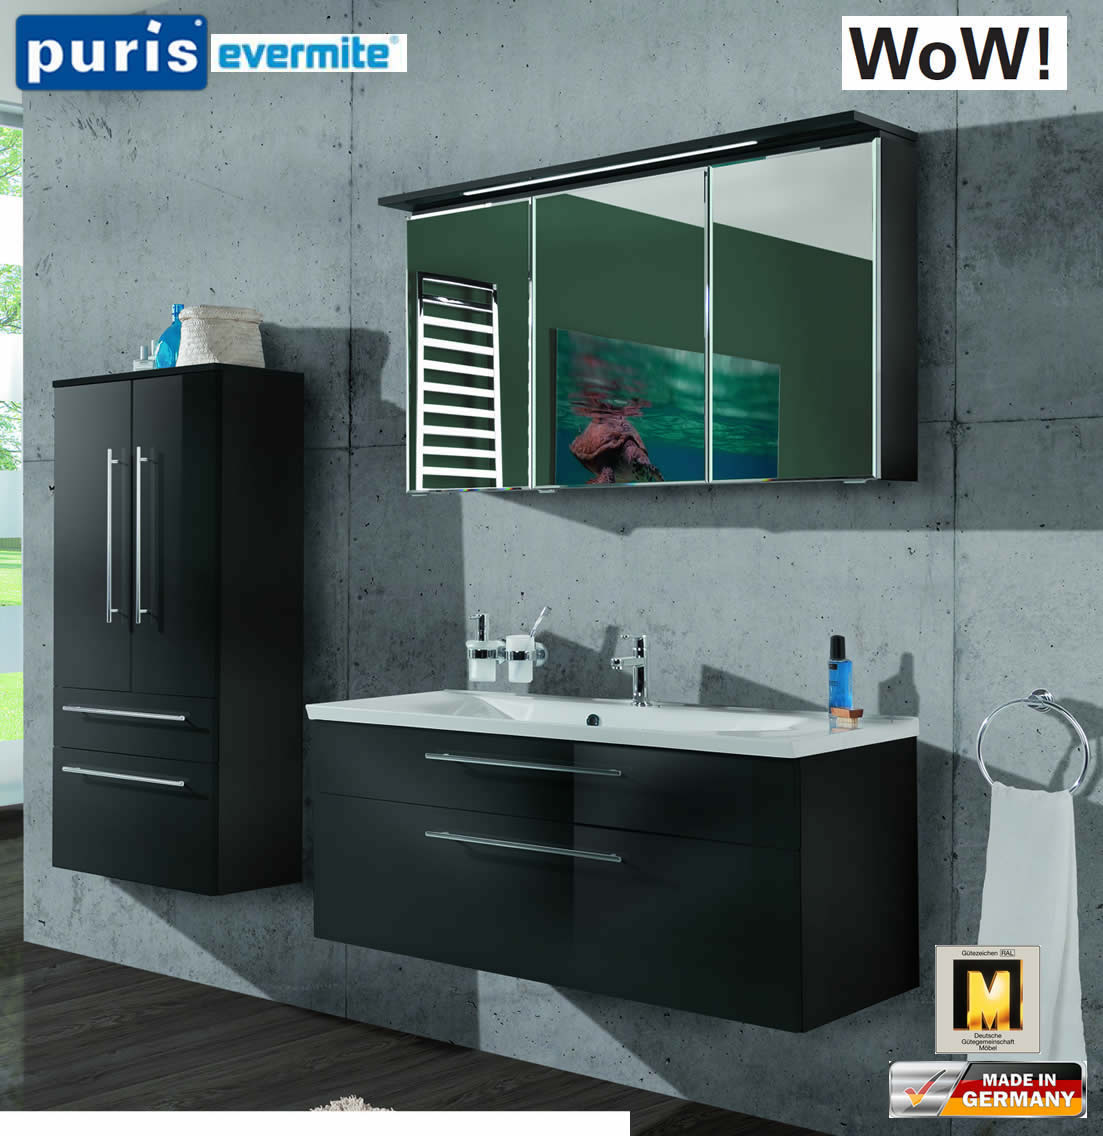 Puris WoW Badmöbel Set 110 cm in Anthrazit - 3tlg - mit EVERMITE ...